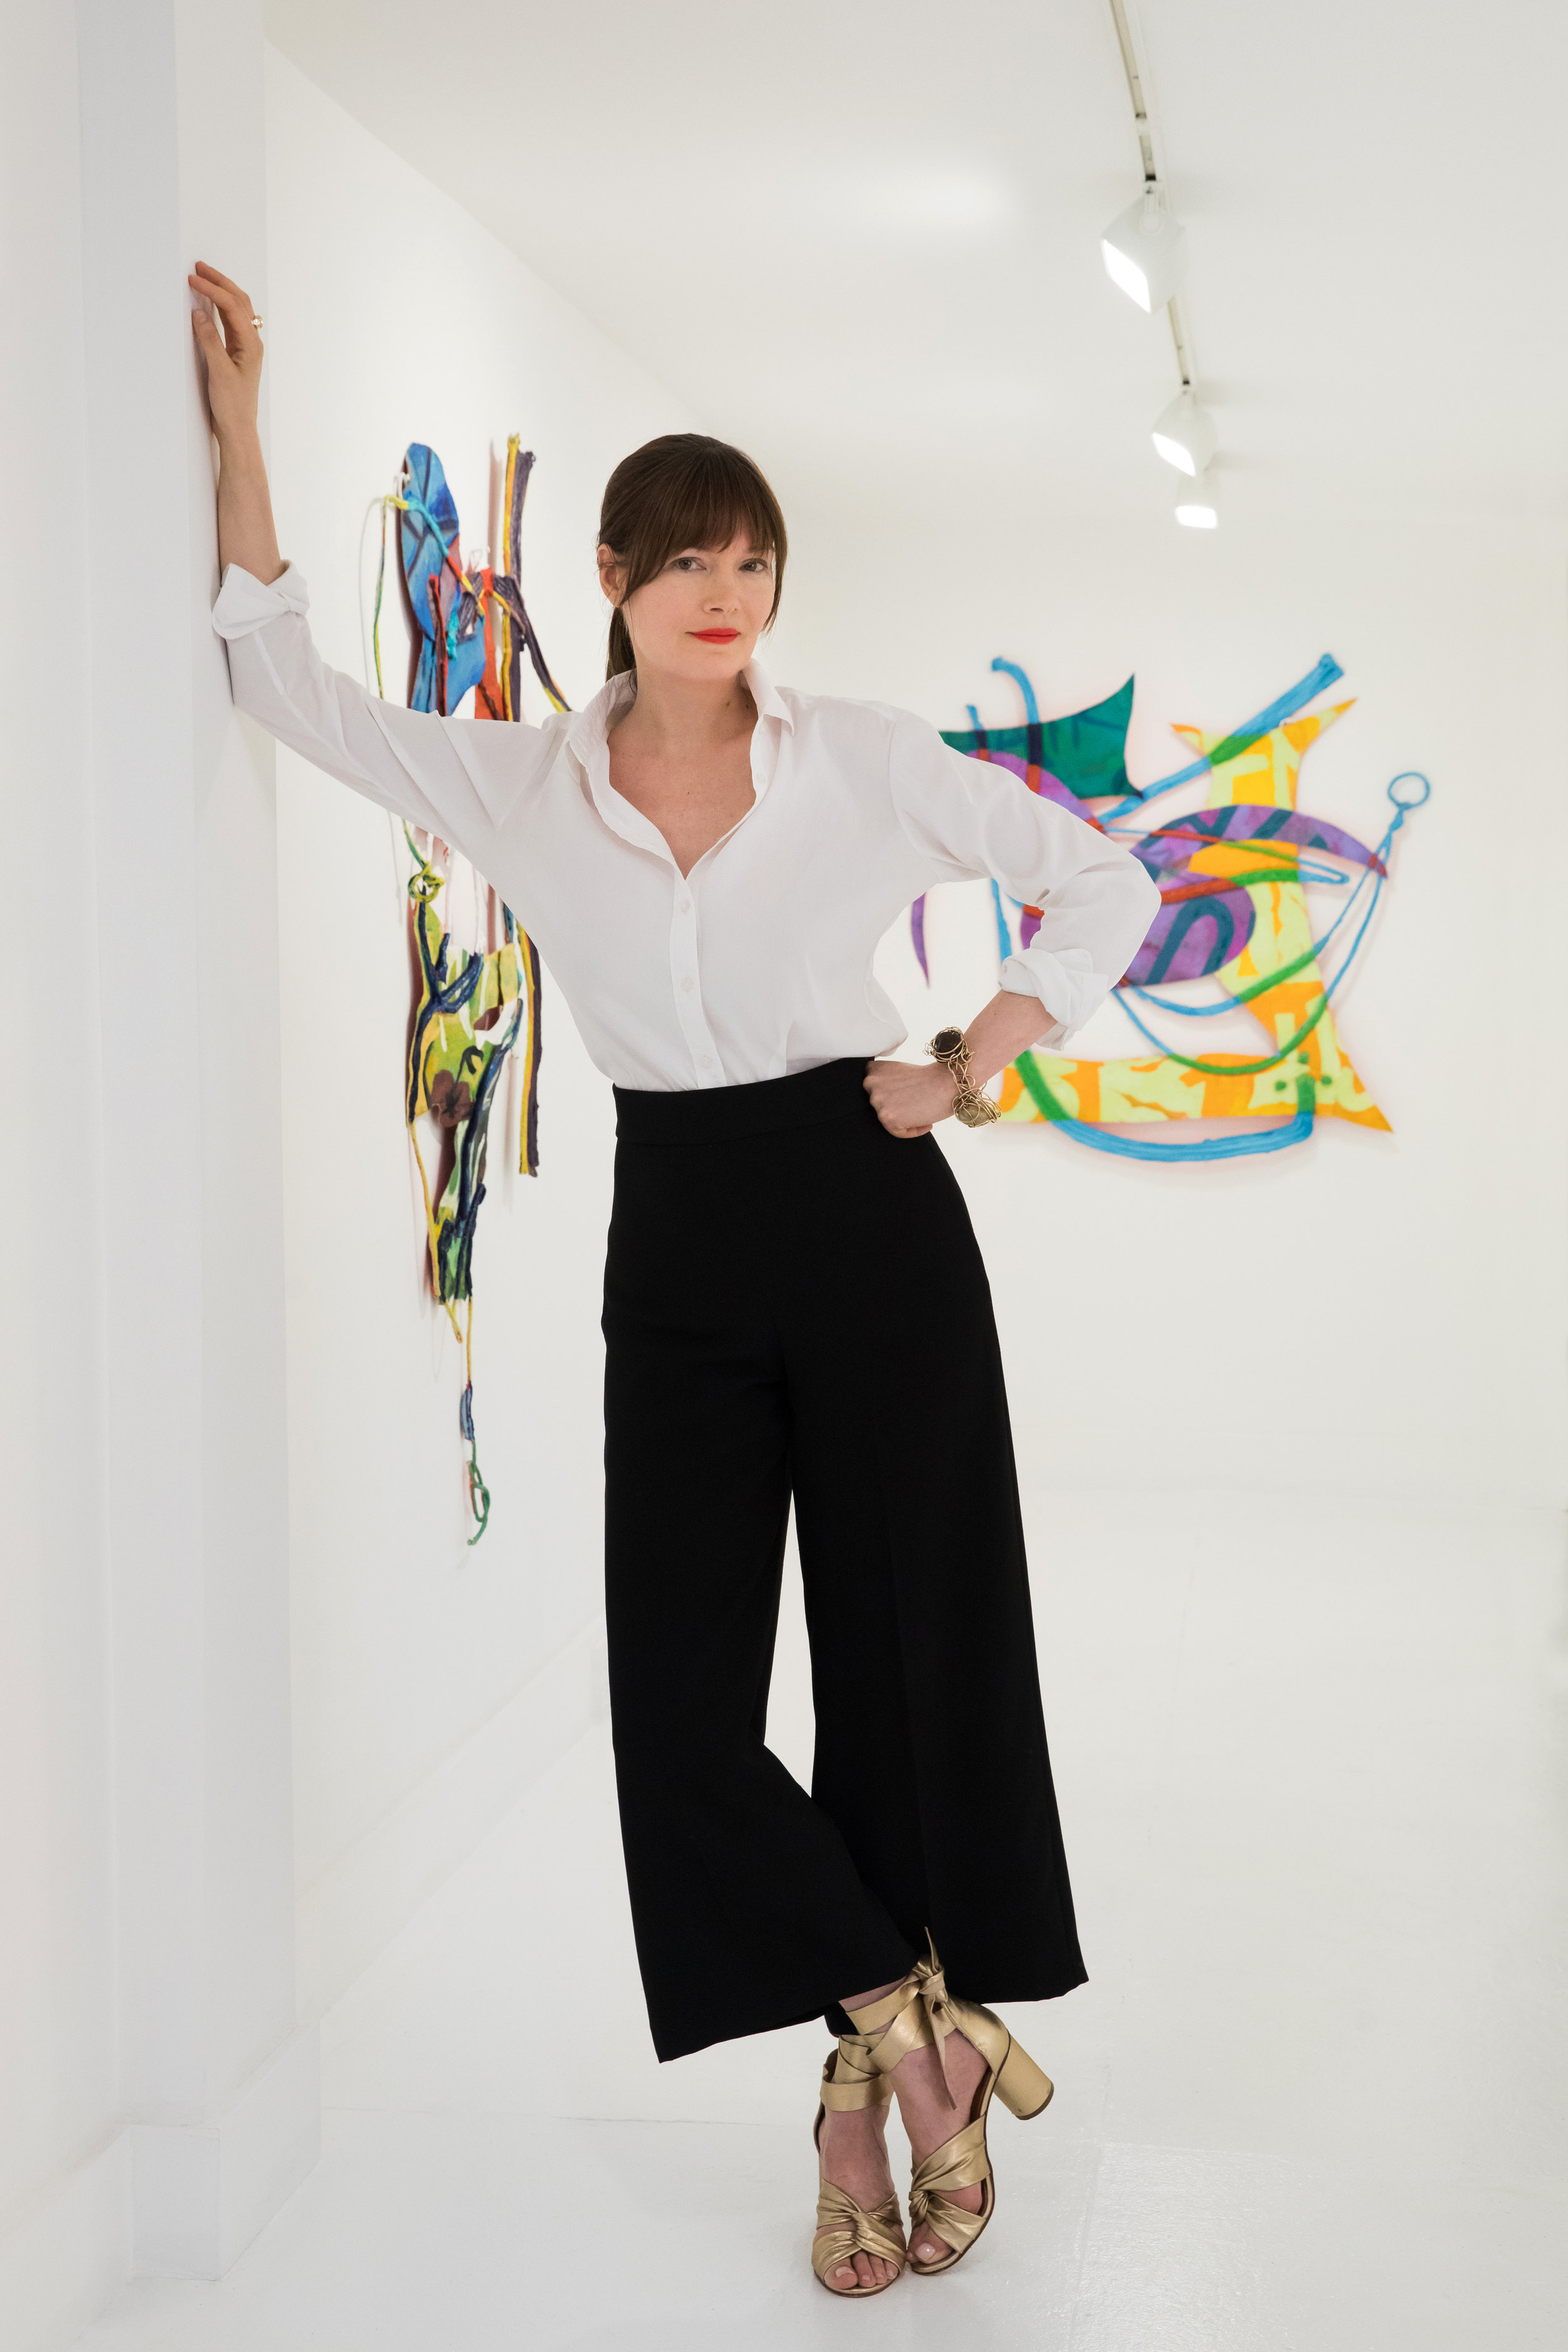 TURN Gallery Founder Annika Peterson. Photo: Jenny Gorman